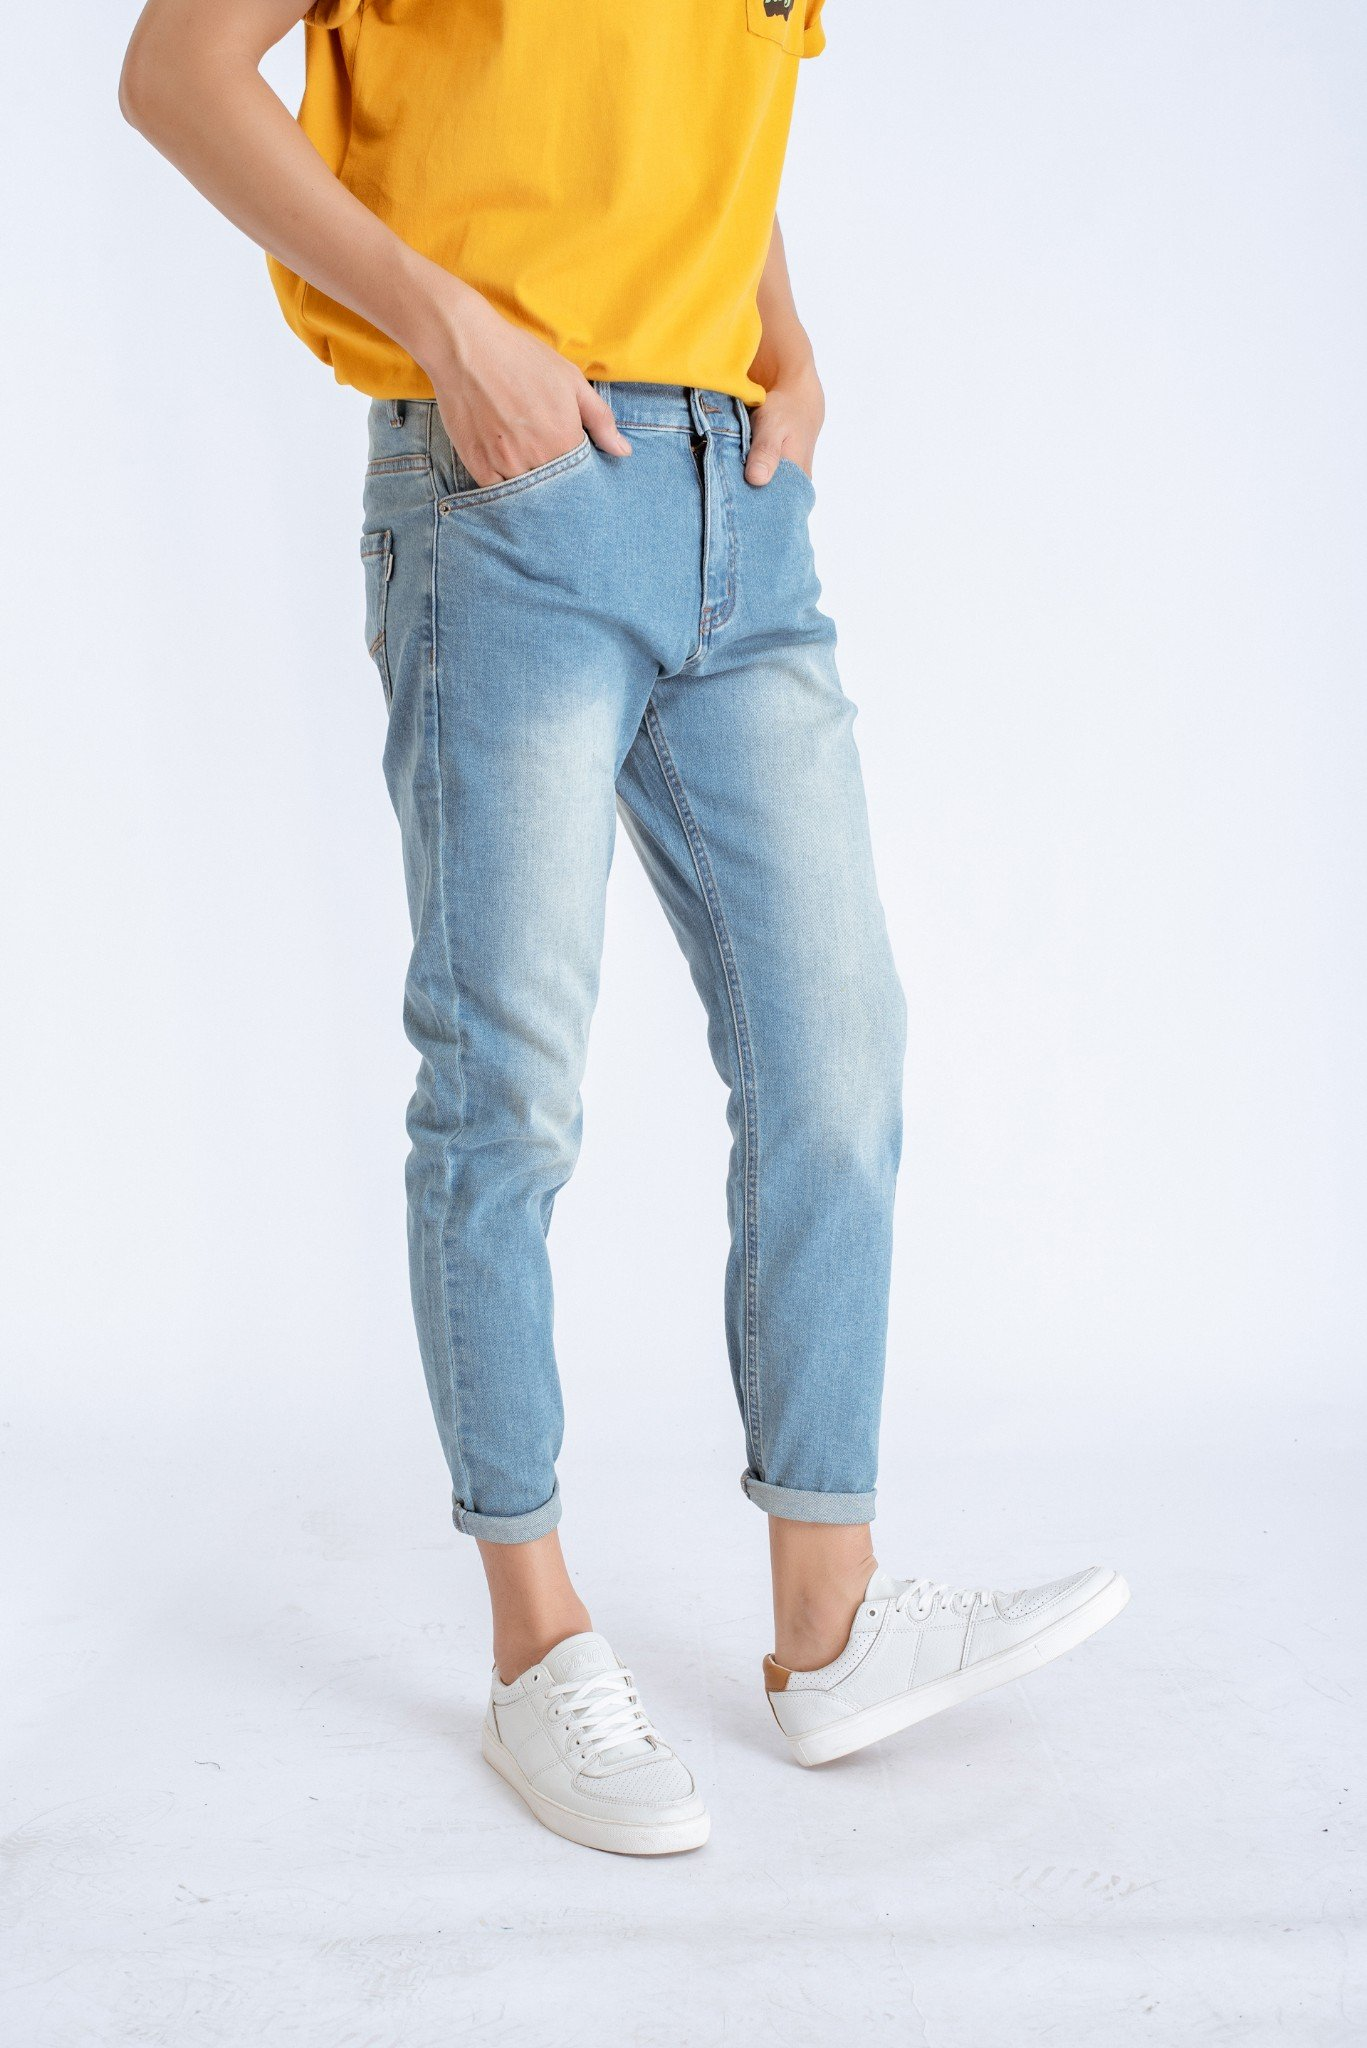 JEANS NAM SLIM FIT WASH NHẸ